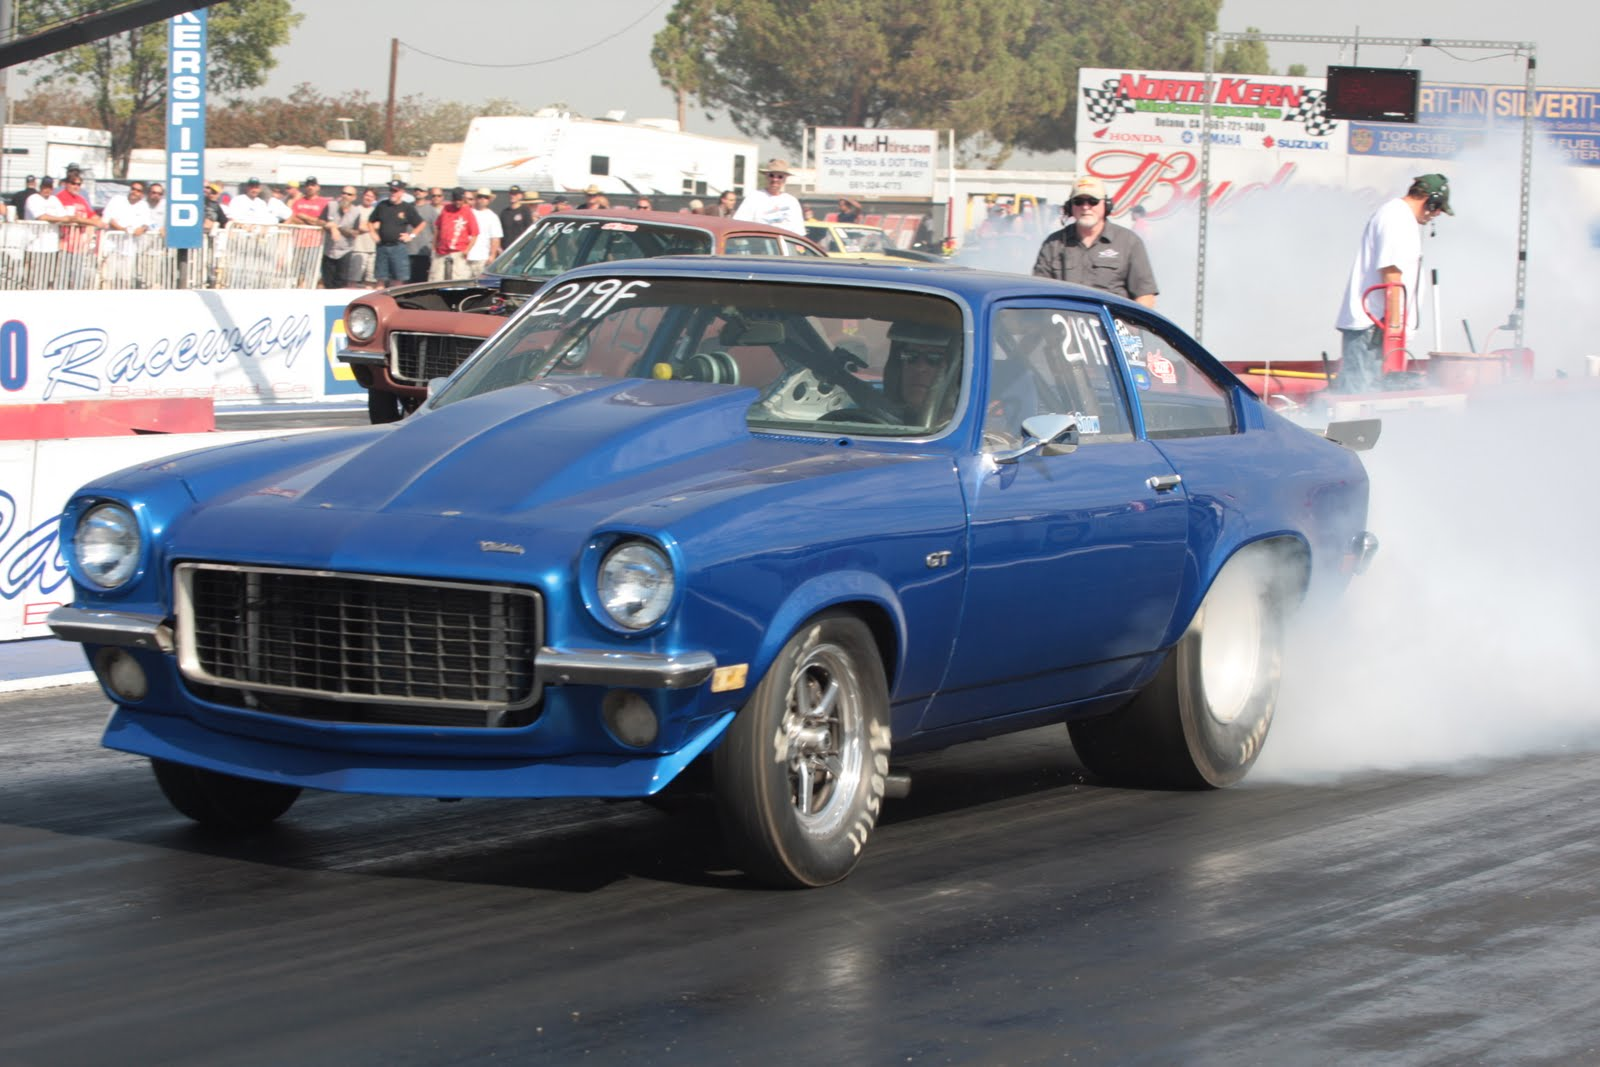 Rolling Chassis Drag Cars For Sale - Cars Image 2018